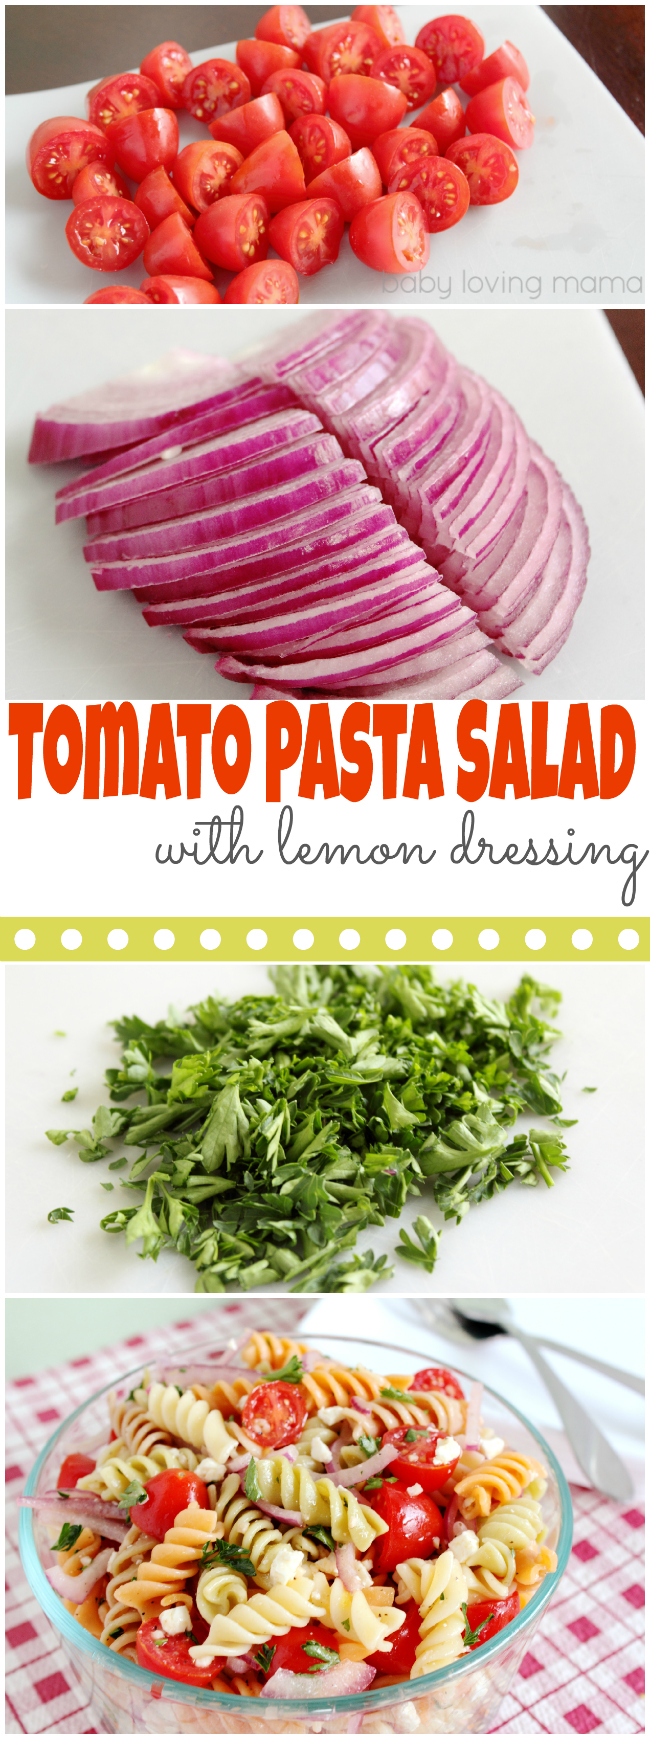 Tomato Pasta Salad with Lemon Dressing